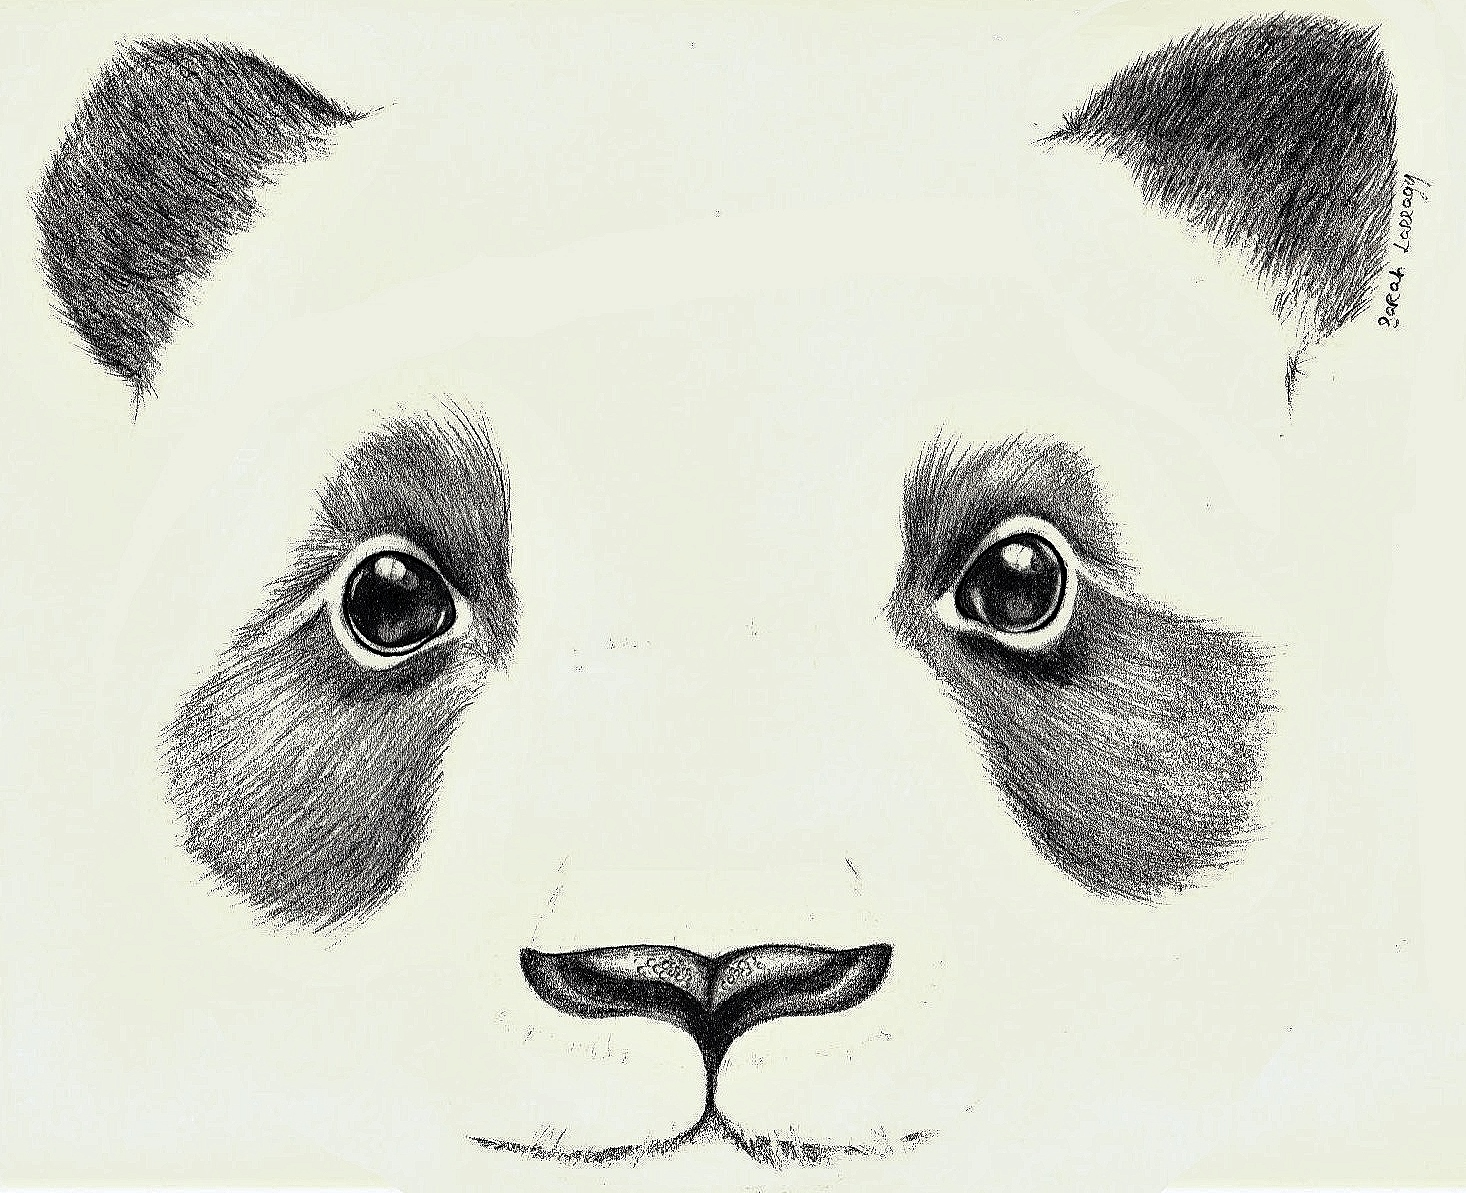 1466x1193 The Giant Panda's Disappearance From The Endangered Species List